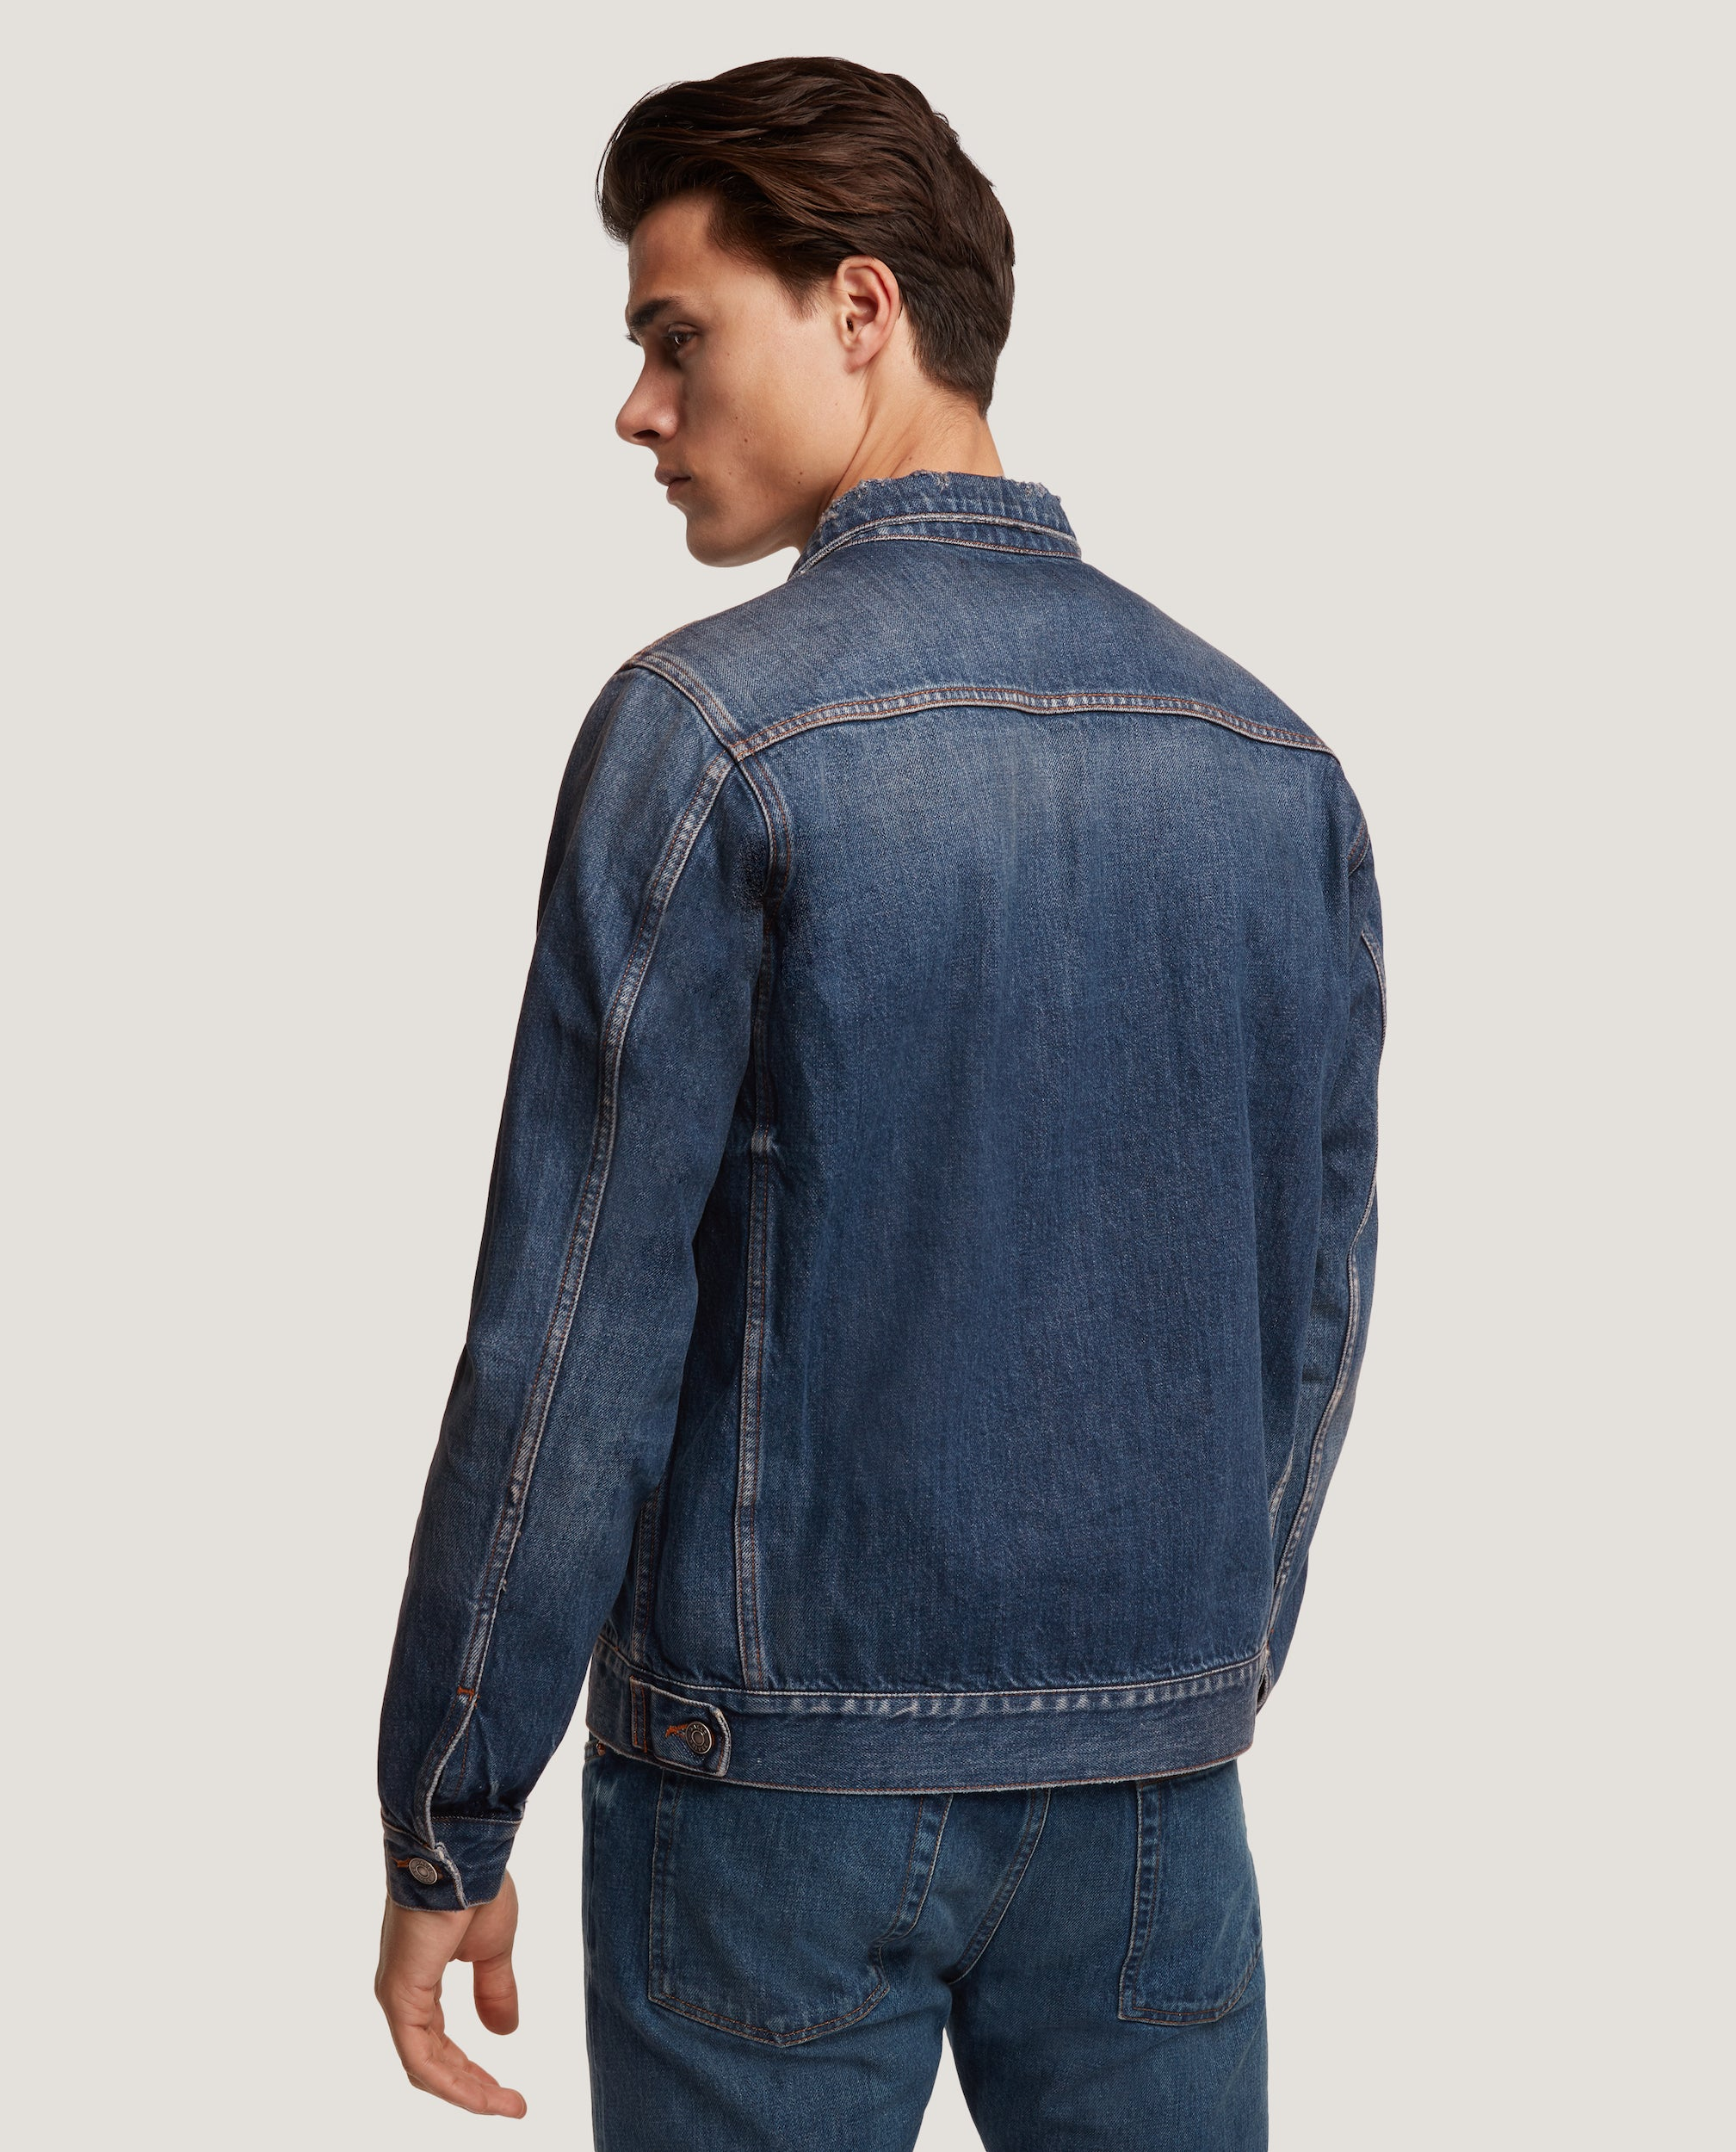 ZACH denim jacket | Blue distressed